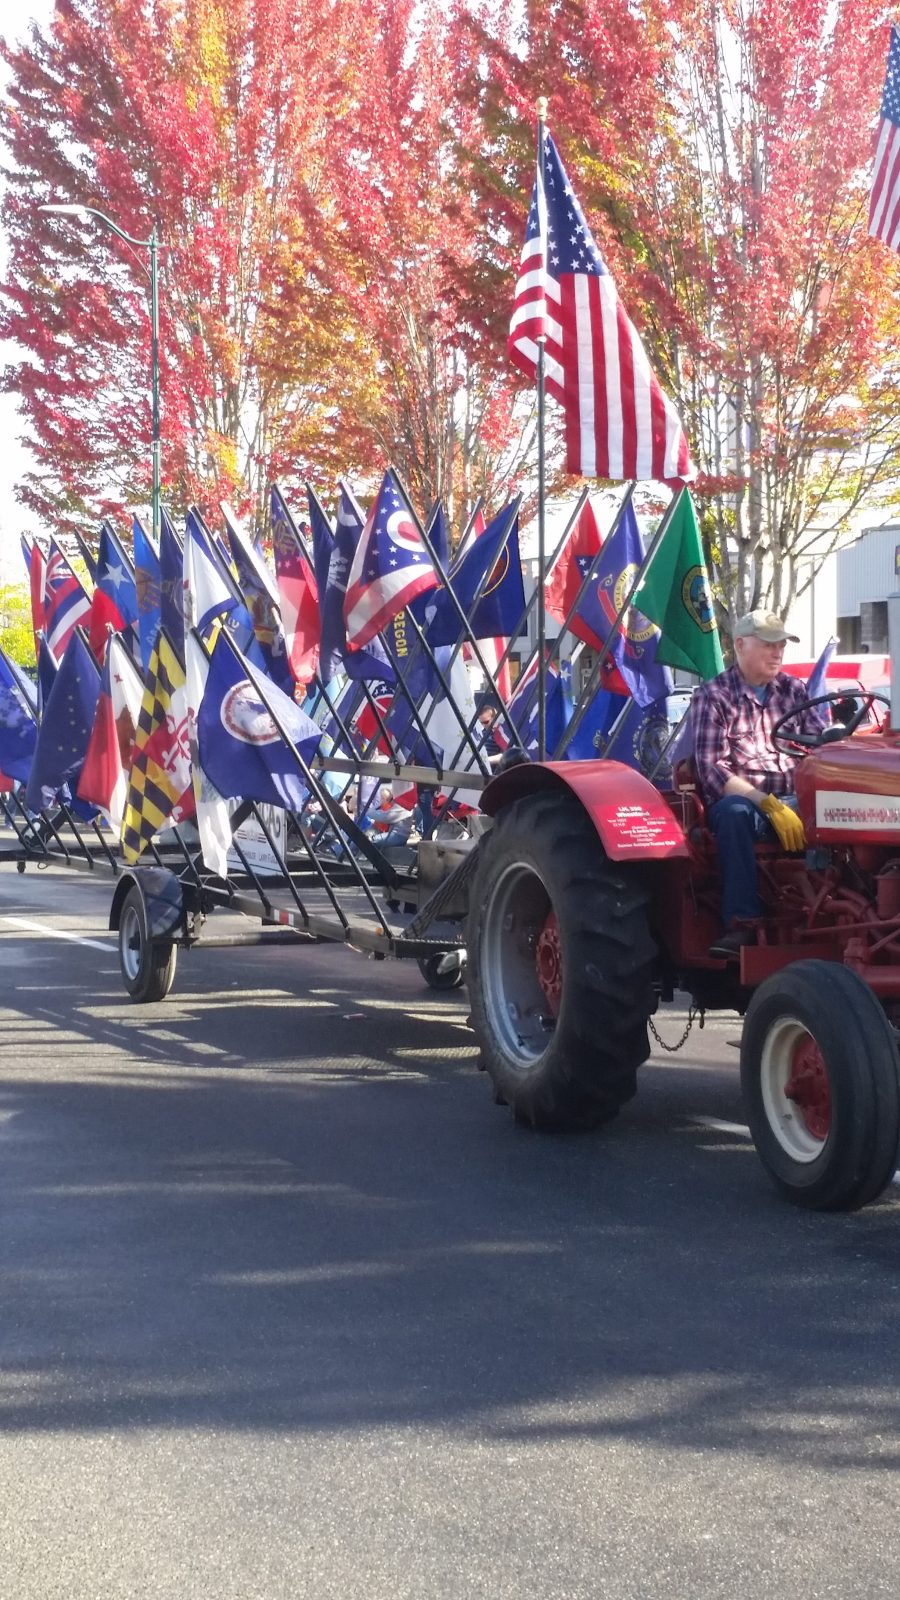 Tractor and Flags